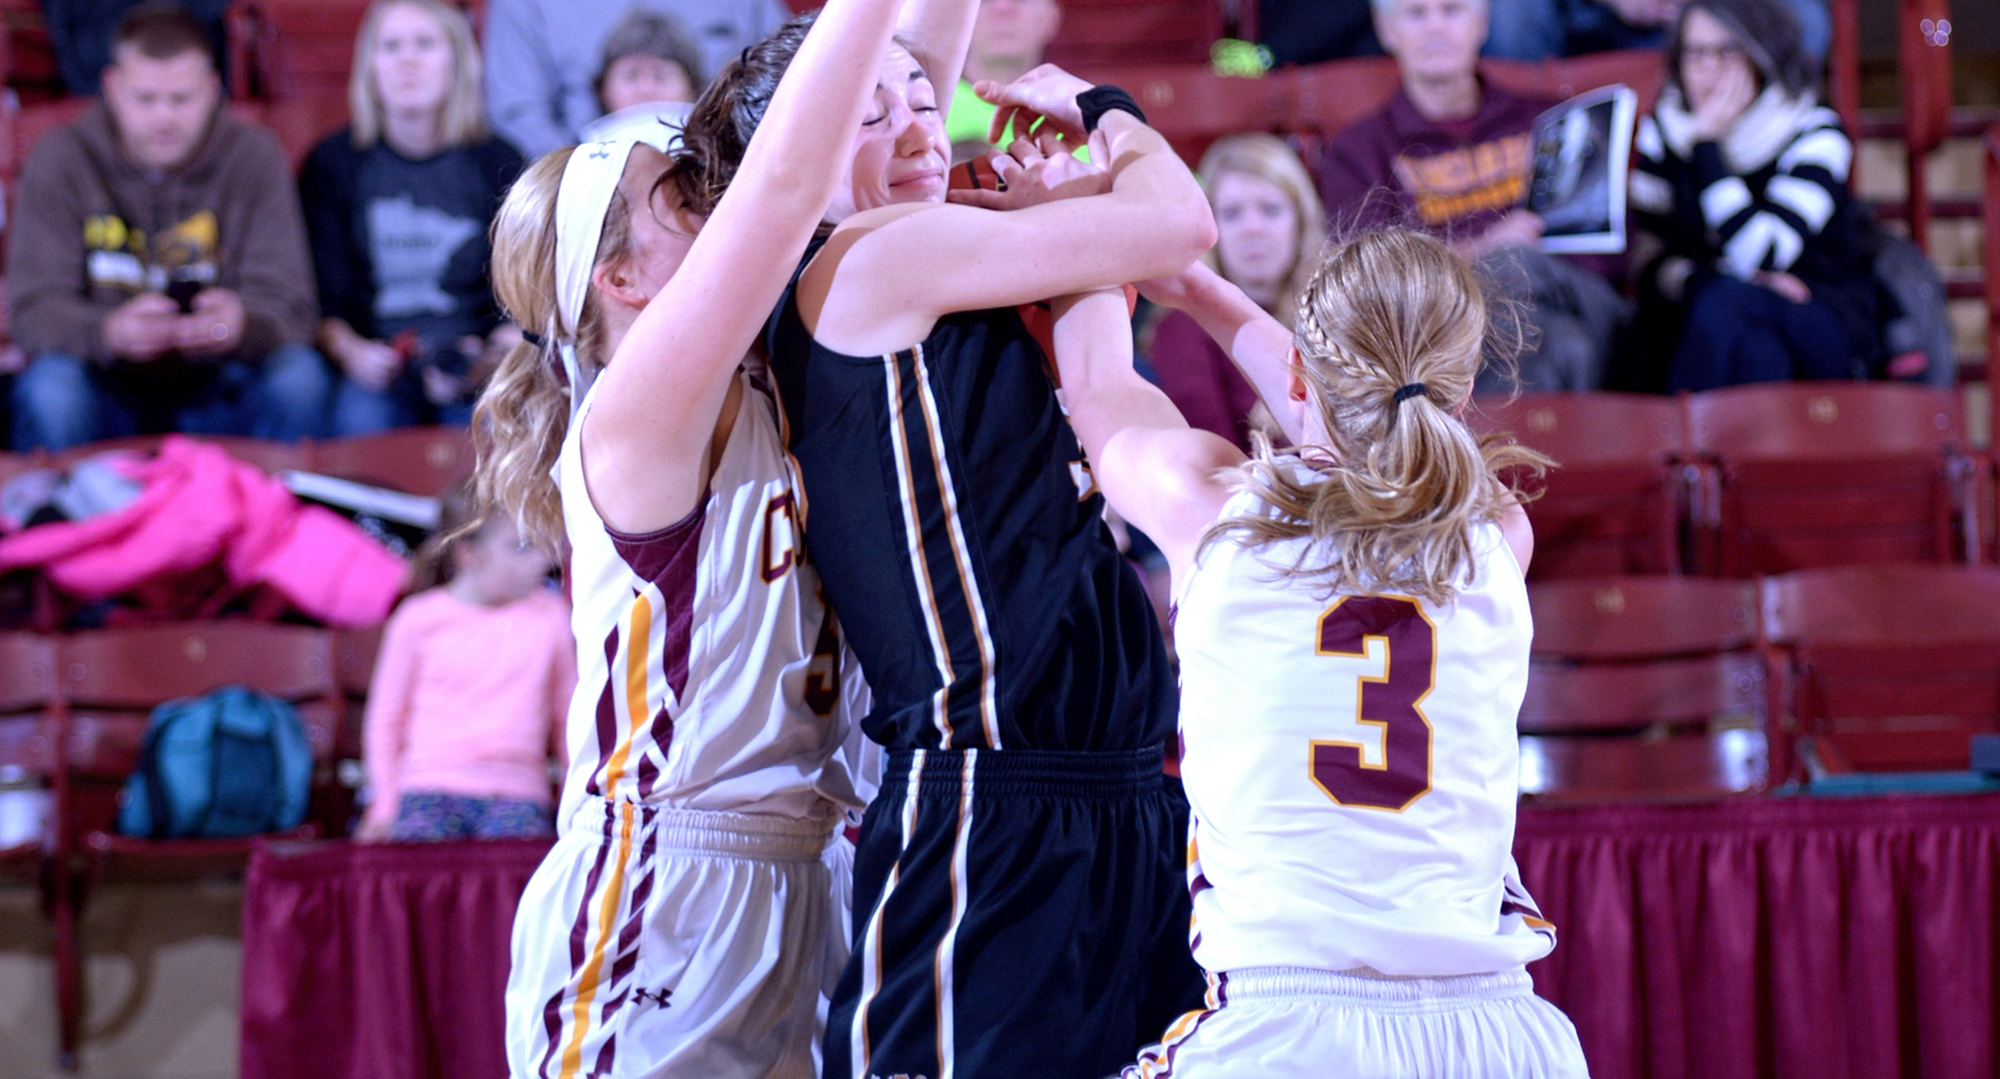 Concordia guards Lexi Nelson (L) and Greta Walsh pressure an Ole player with the ball during the Cobbers' gamer with St. Olaf.